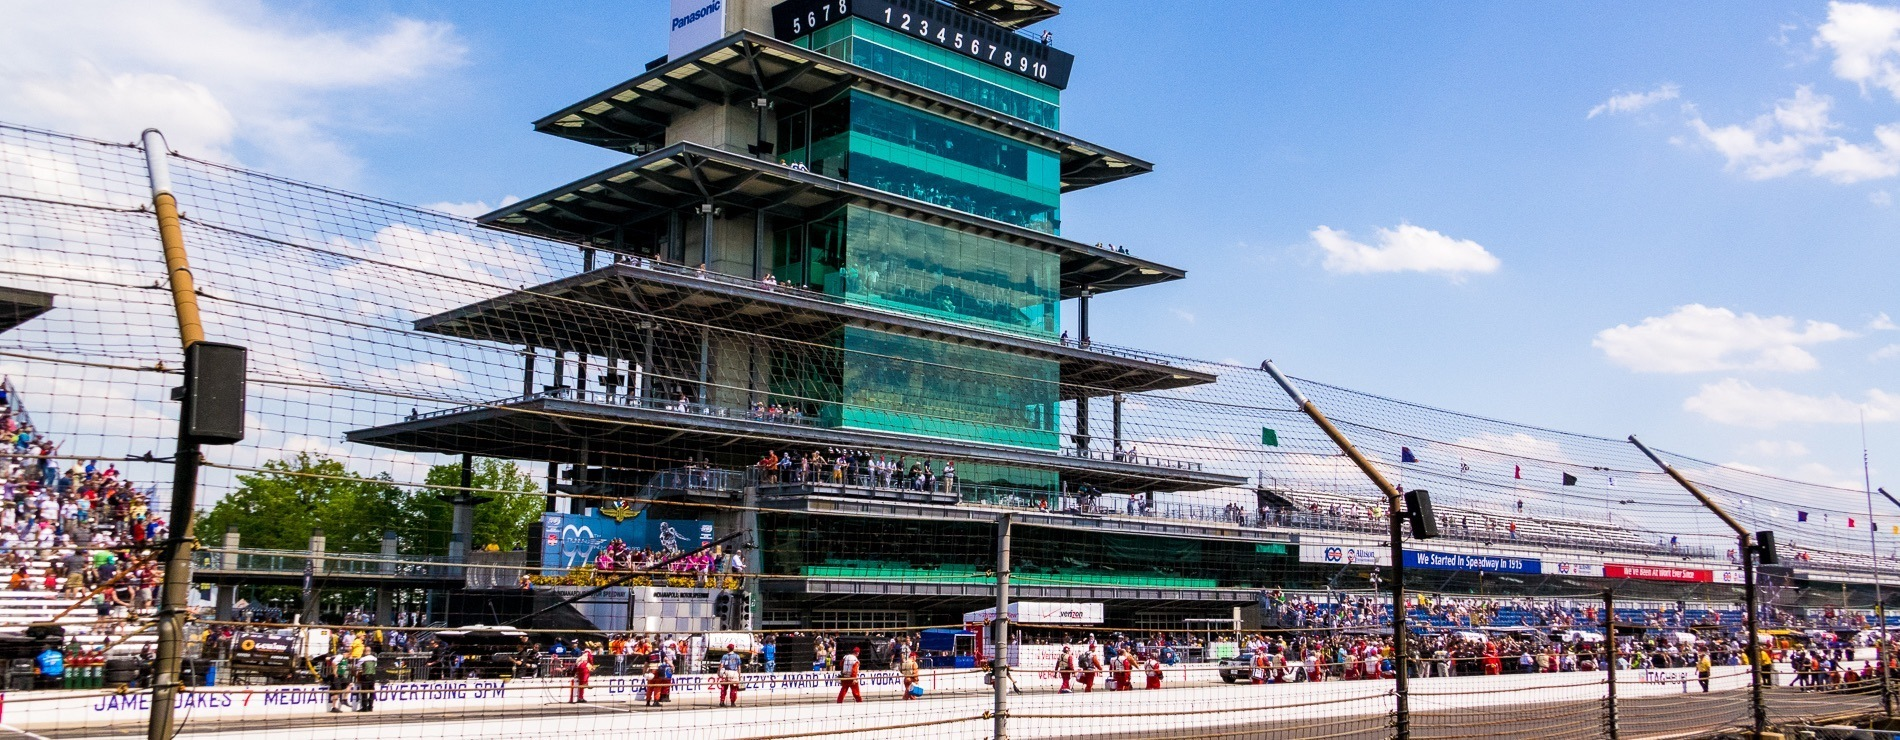 Dadtography Road Trip: 99th Indy500 or Bust!